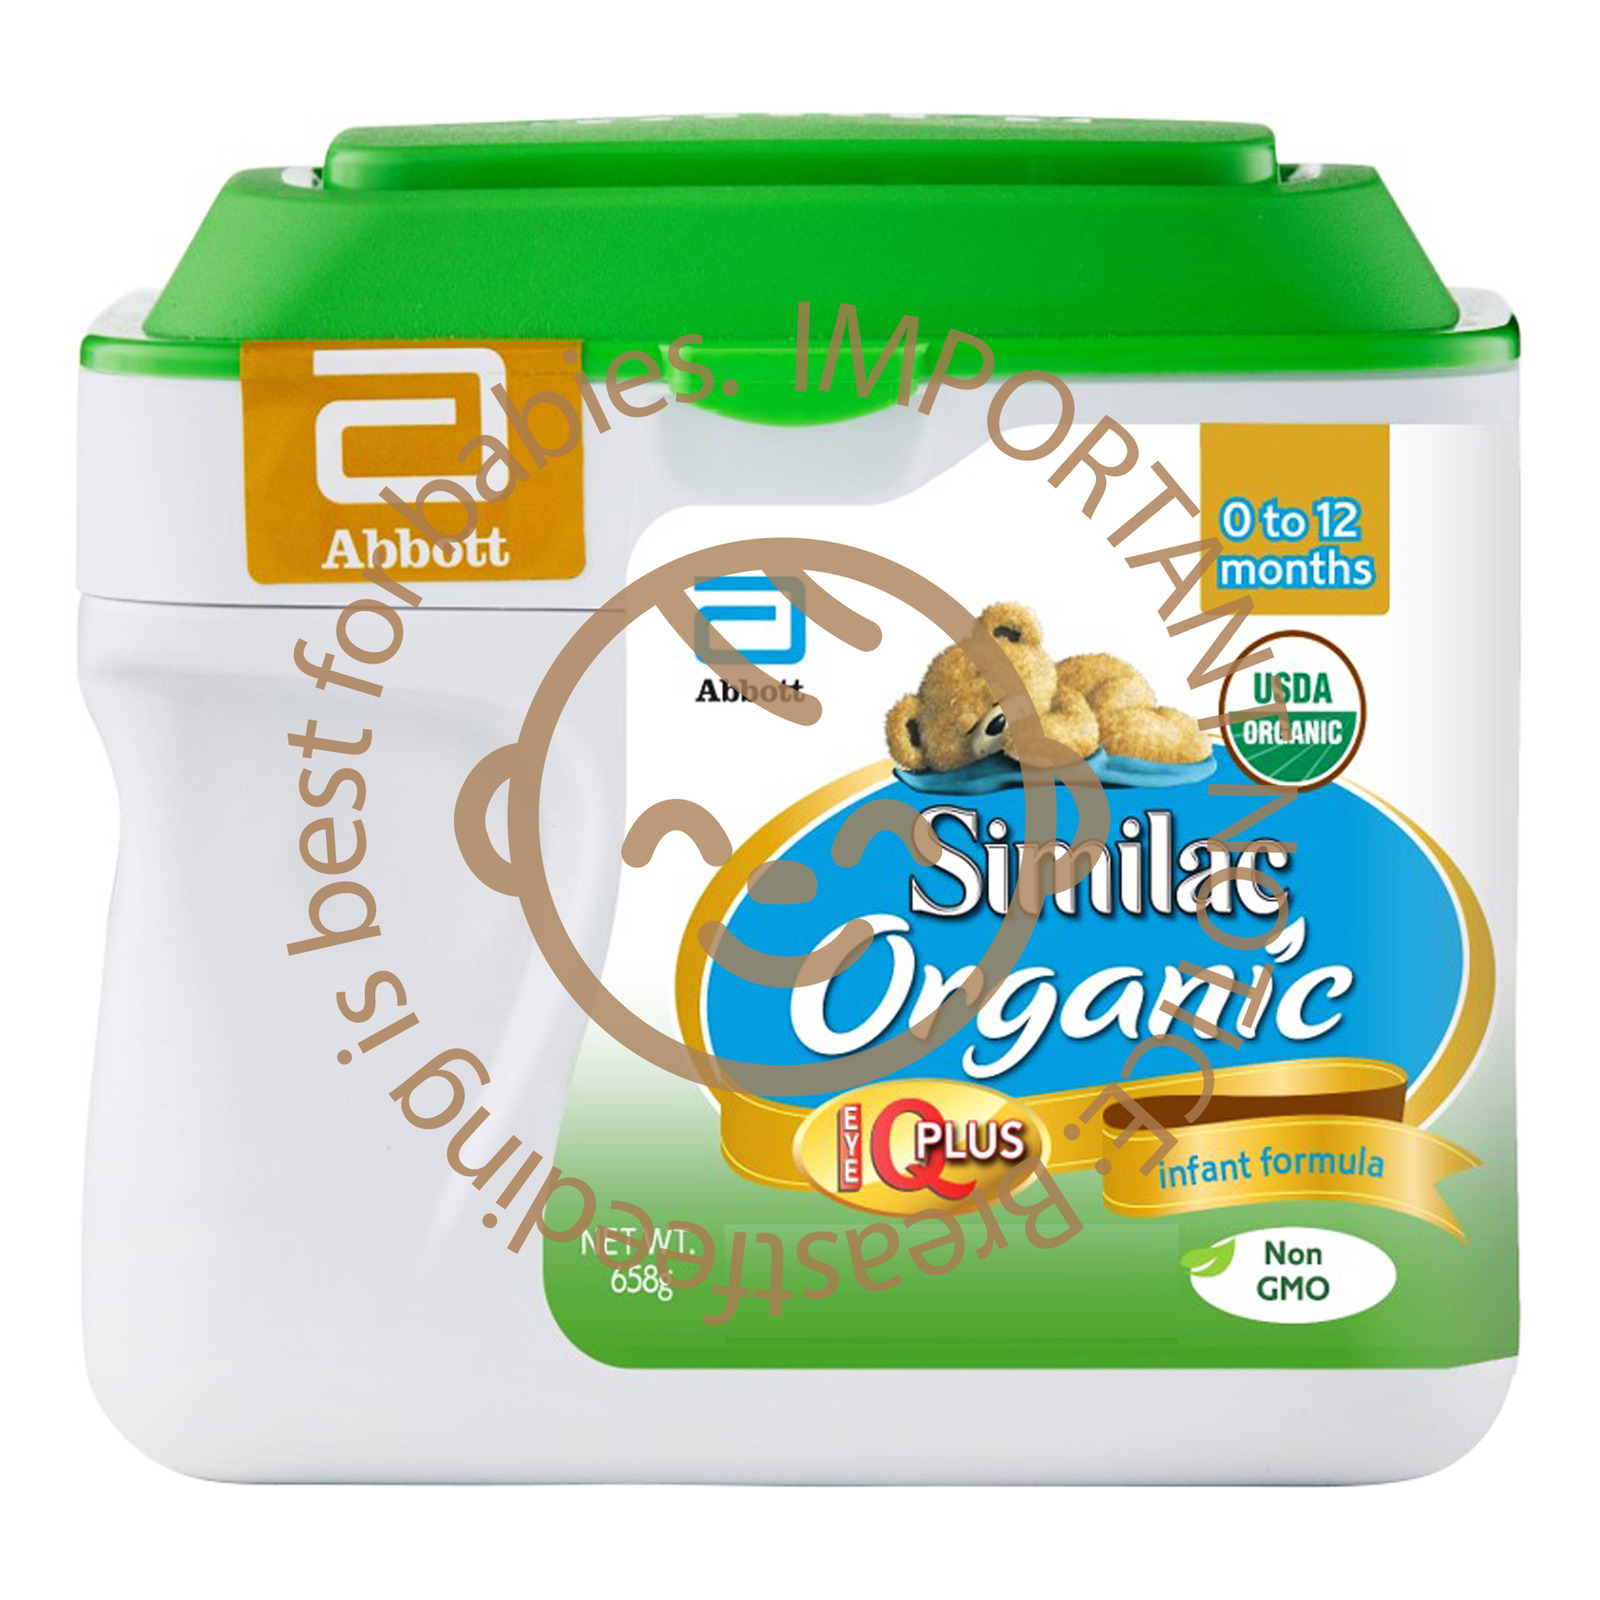 BELLAMYS ORGANIC organic infant milk formula step 1 900g